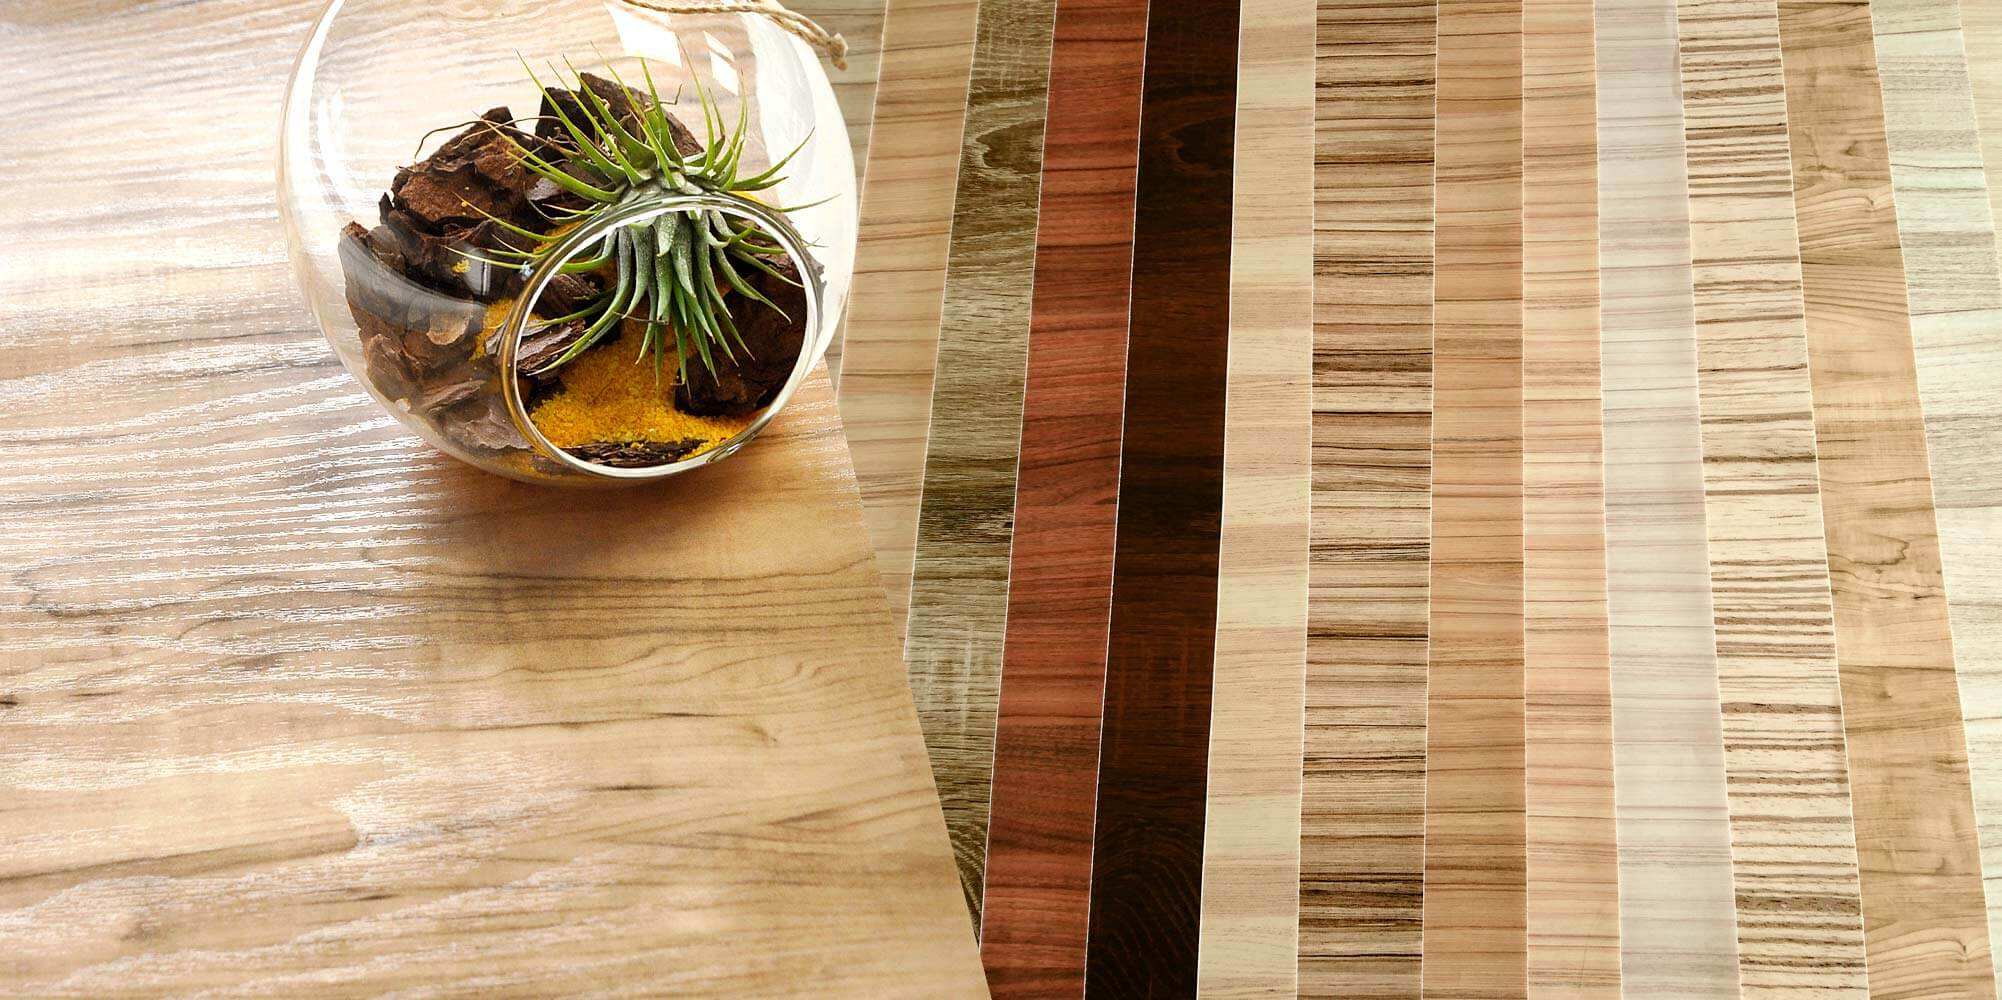 vynil wrapping furniture wood texture real